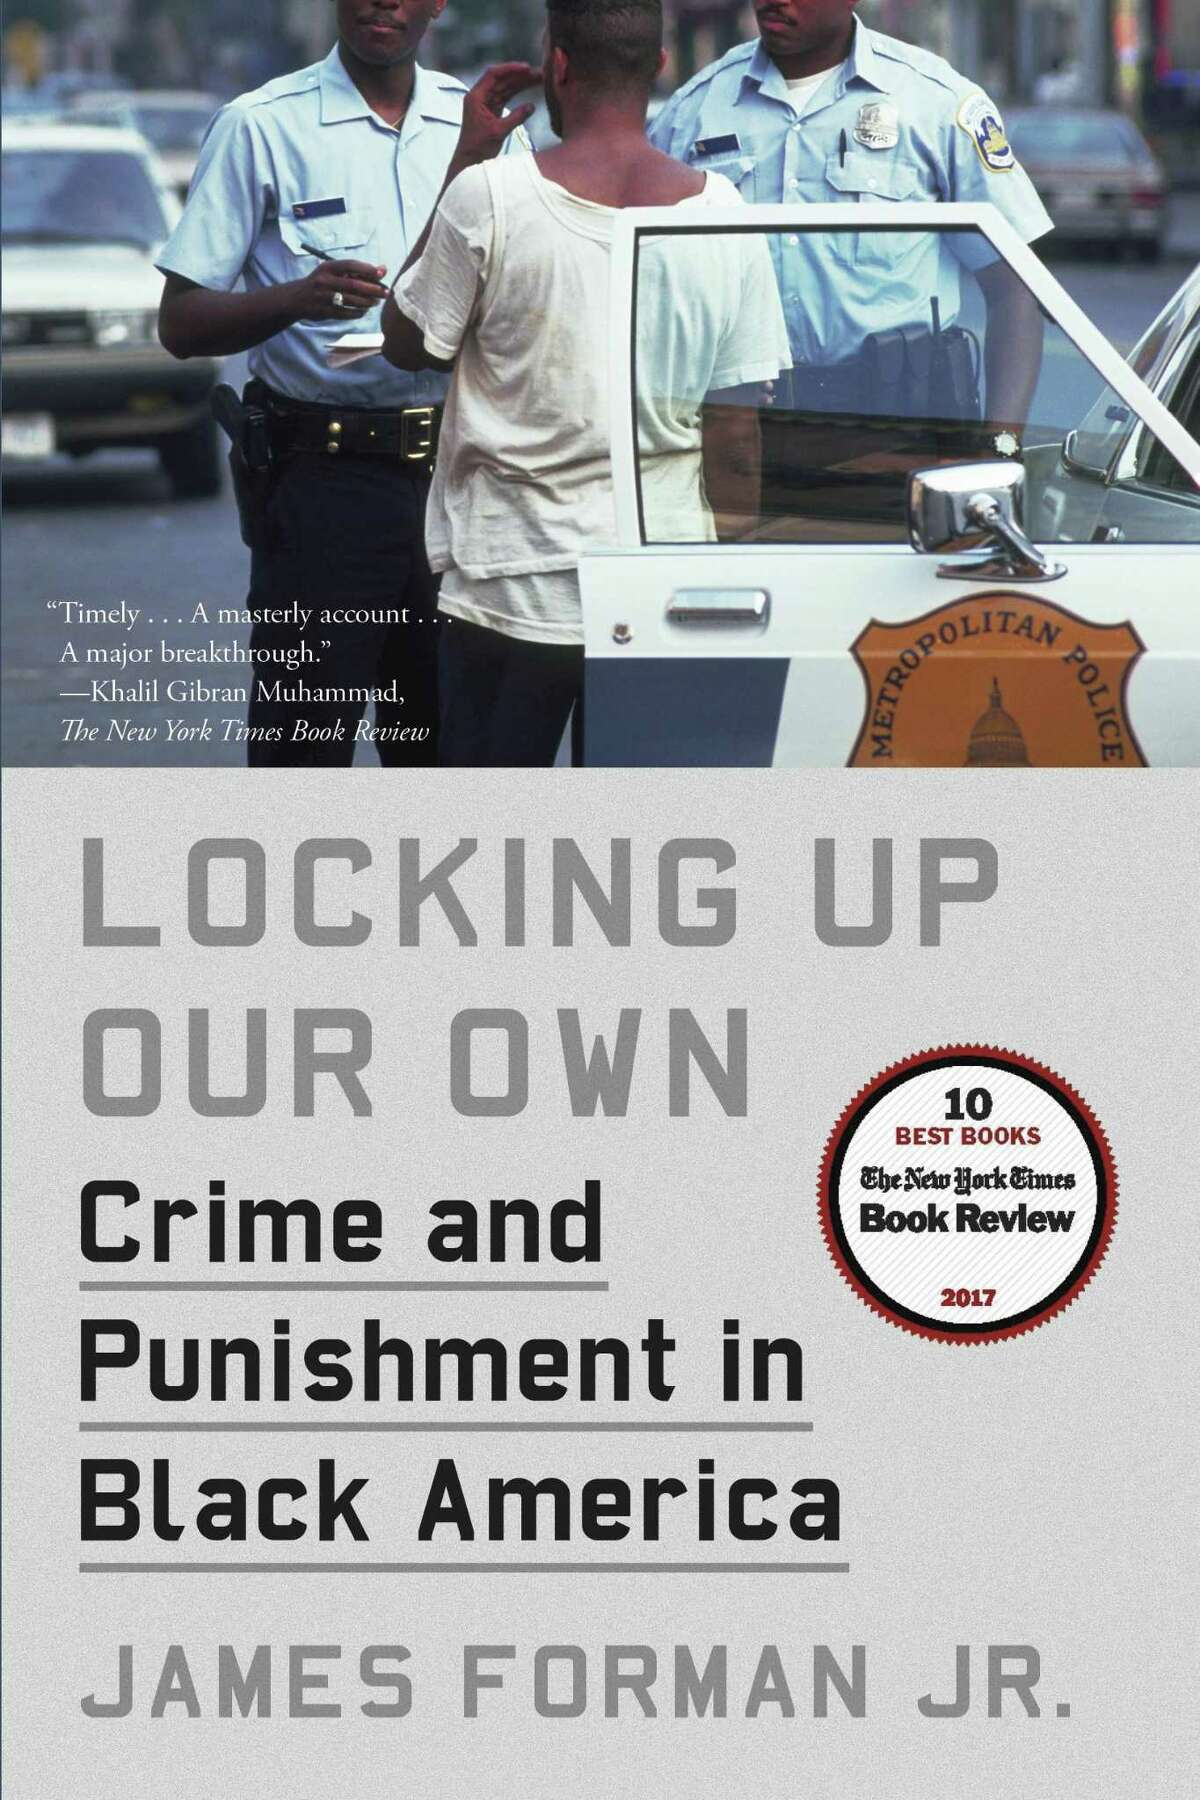 This cover image released by Farrar, Straus and Giroux shows